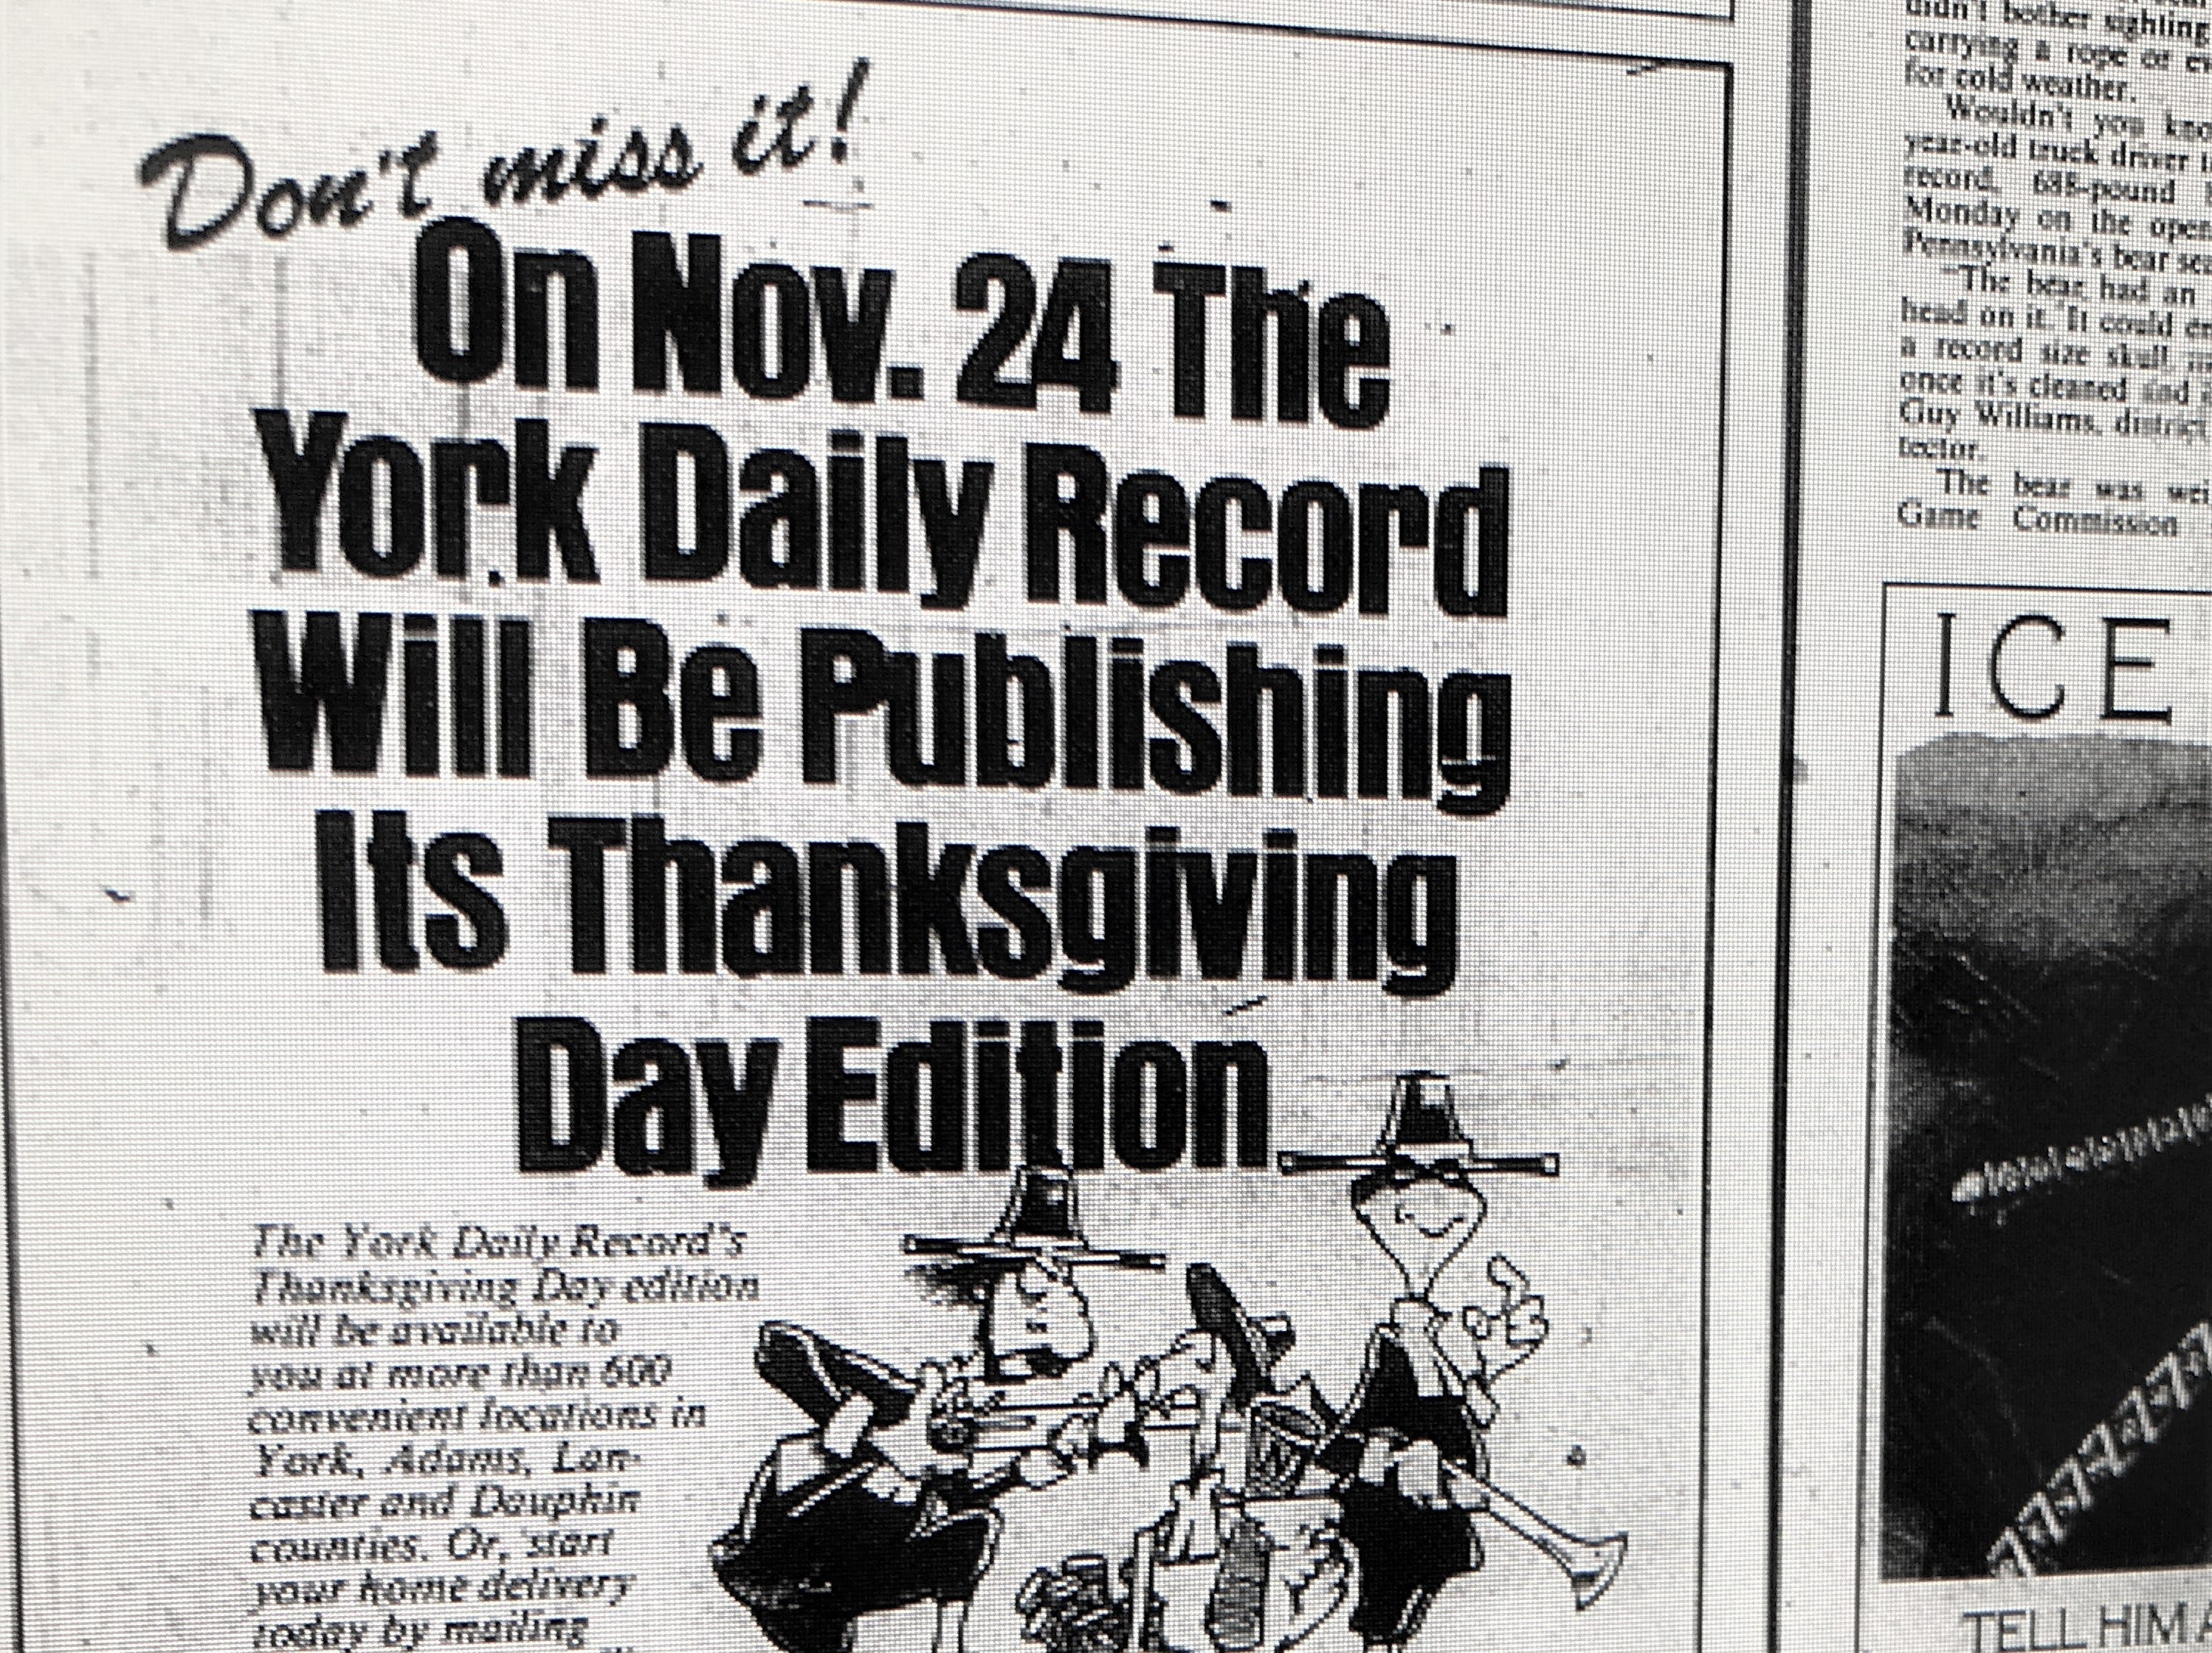 A York Daily Record ad for the paper's Thanksgiving Day edition. This advertisement ran on Wednesday, November 23, 1988. Today, the York Daily Record's Thanksgiving Day edition is still the newspaper's largest single day edition. This year the holiday edition will be available Wednesday afternoon and evening at single-copy outlets.